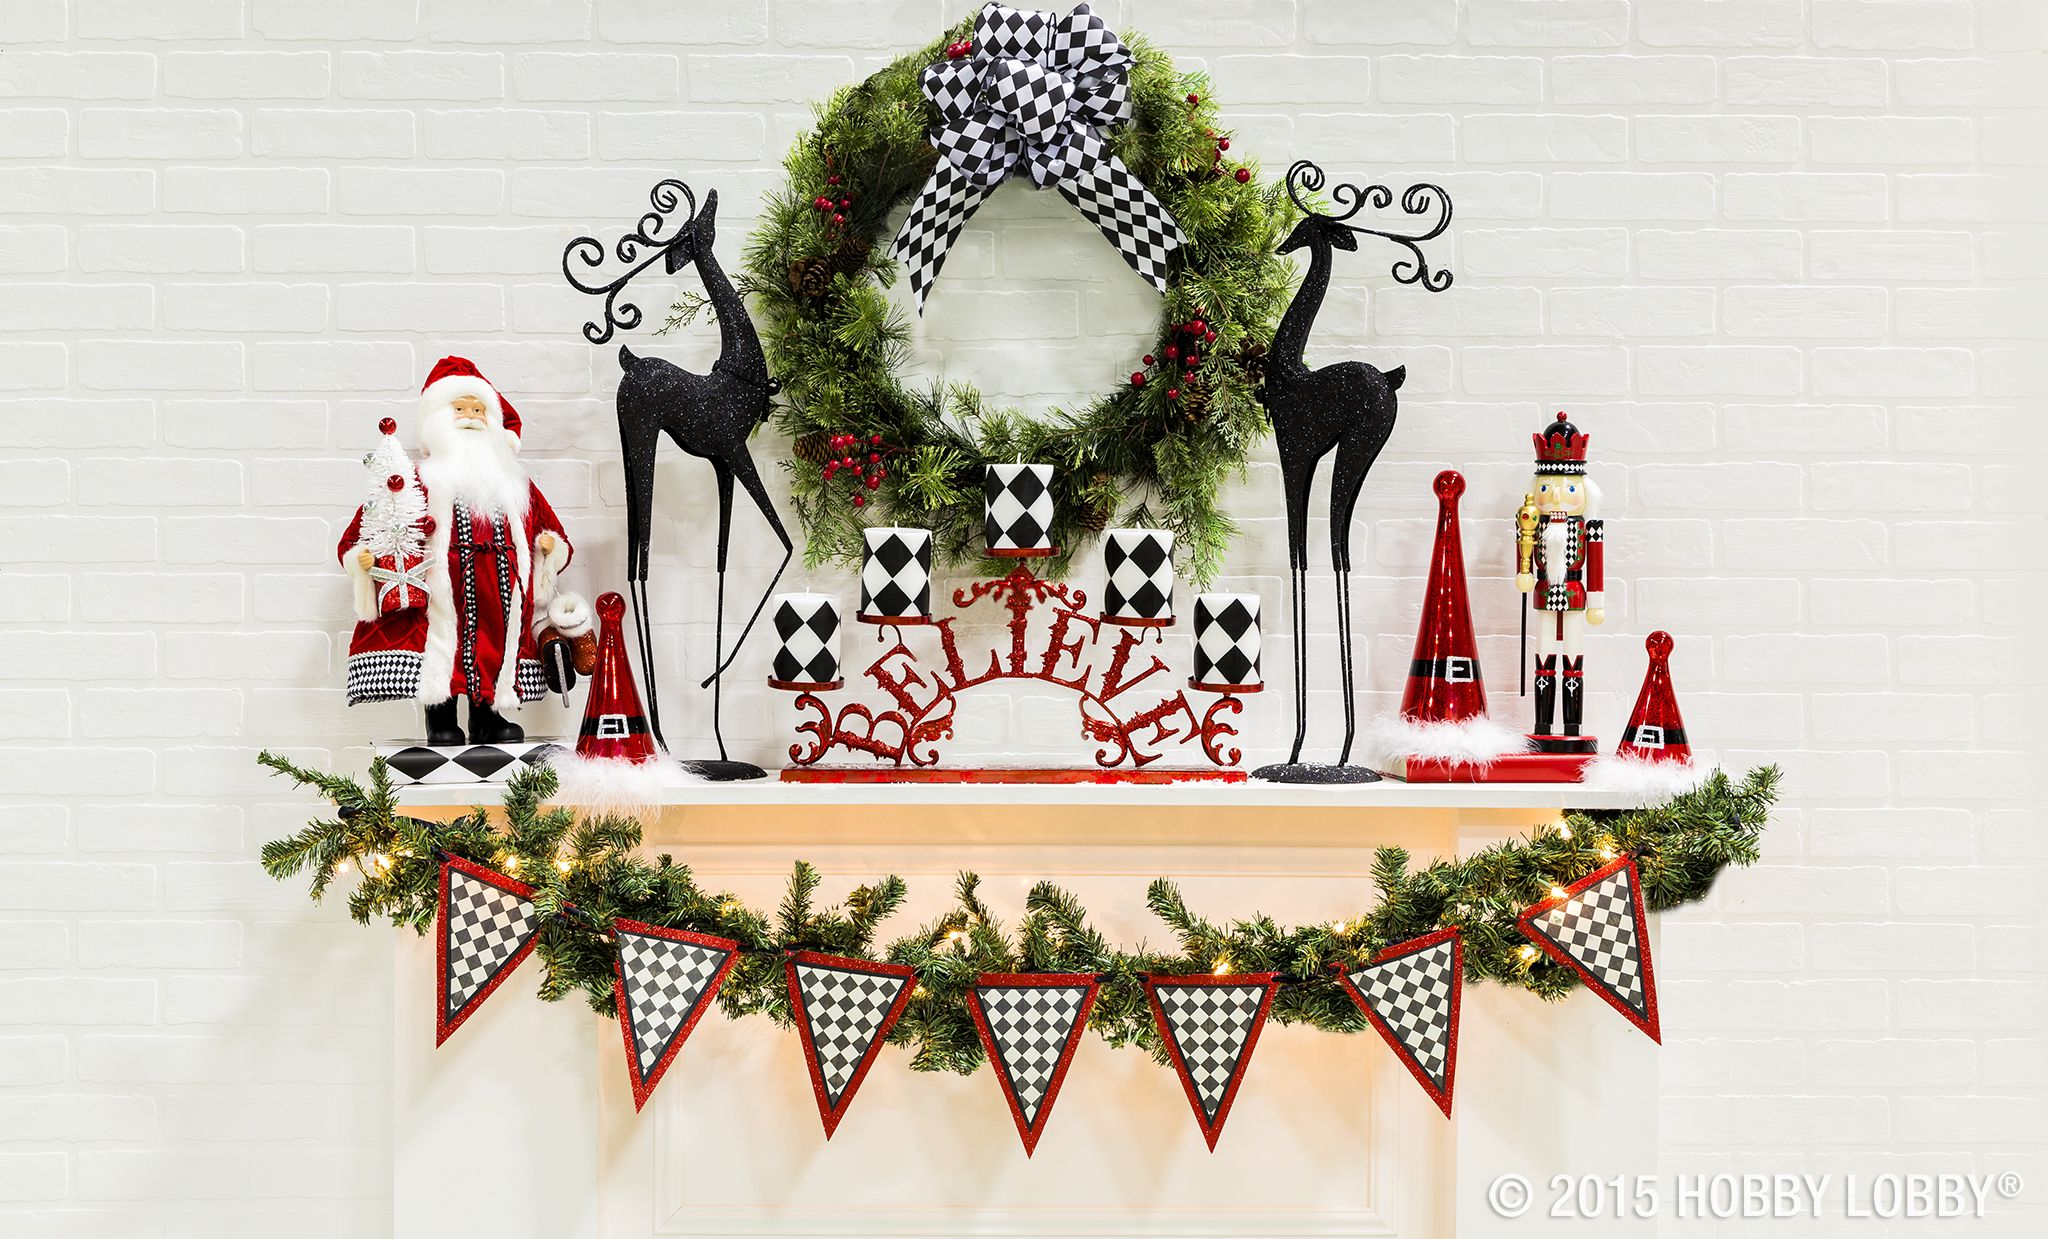 North Pole meets New York in this harlequin Christmas collection! From its start as a women's fashion design, this bold pattern has become a favorite of DIYers and decorators alike.